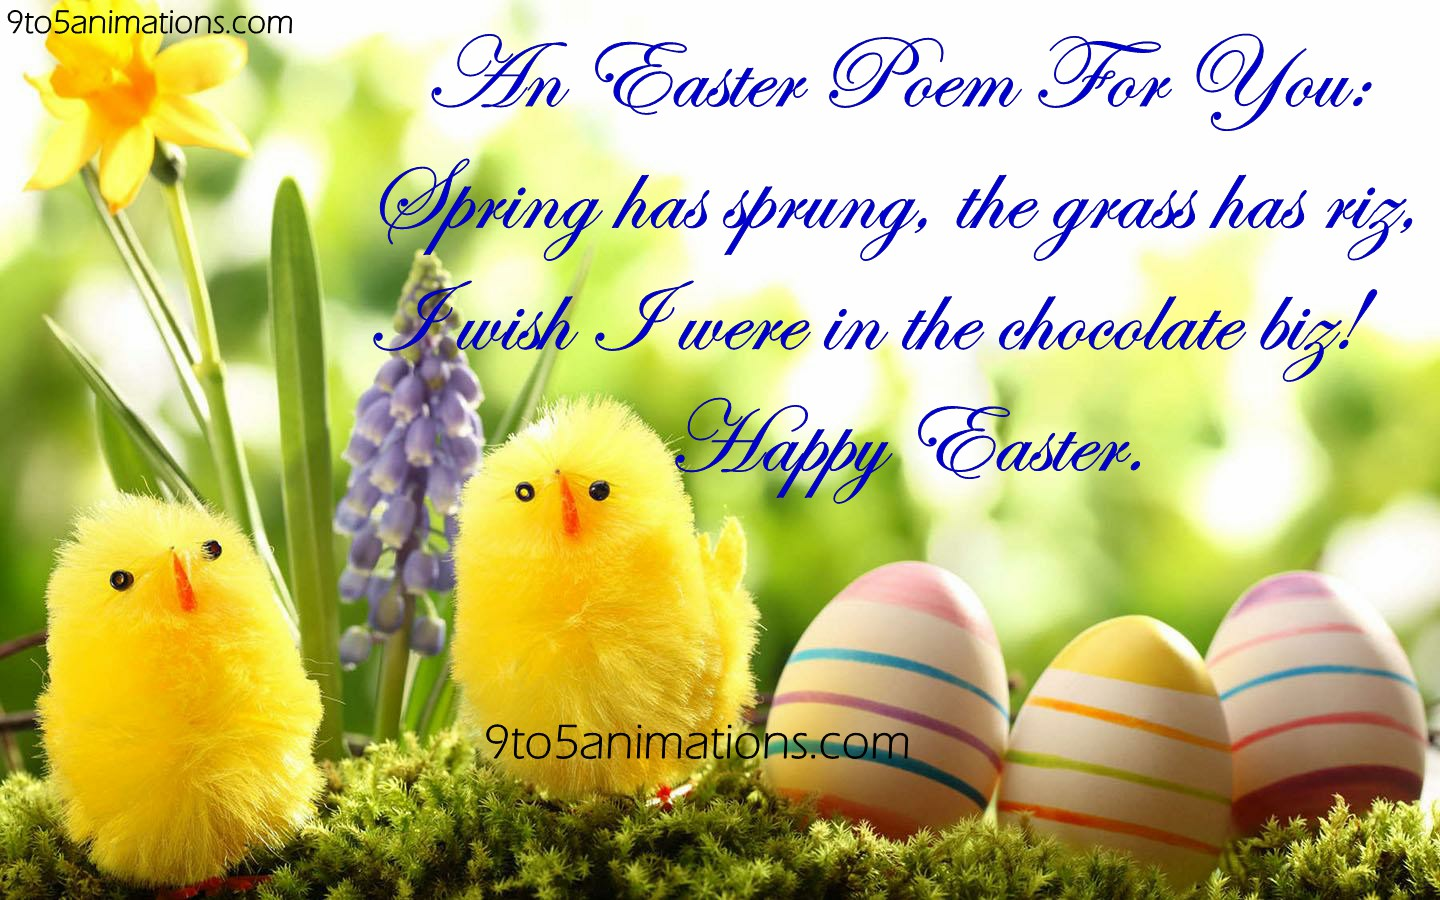 Easter Wishes Quotes HD Wallpapers 9To5AnimationsCom 1440x900